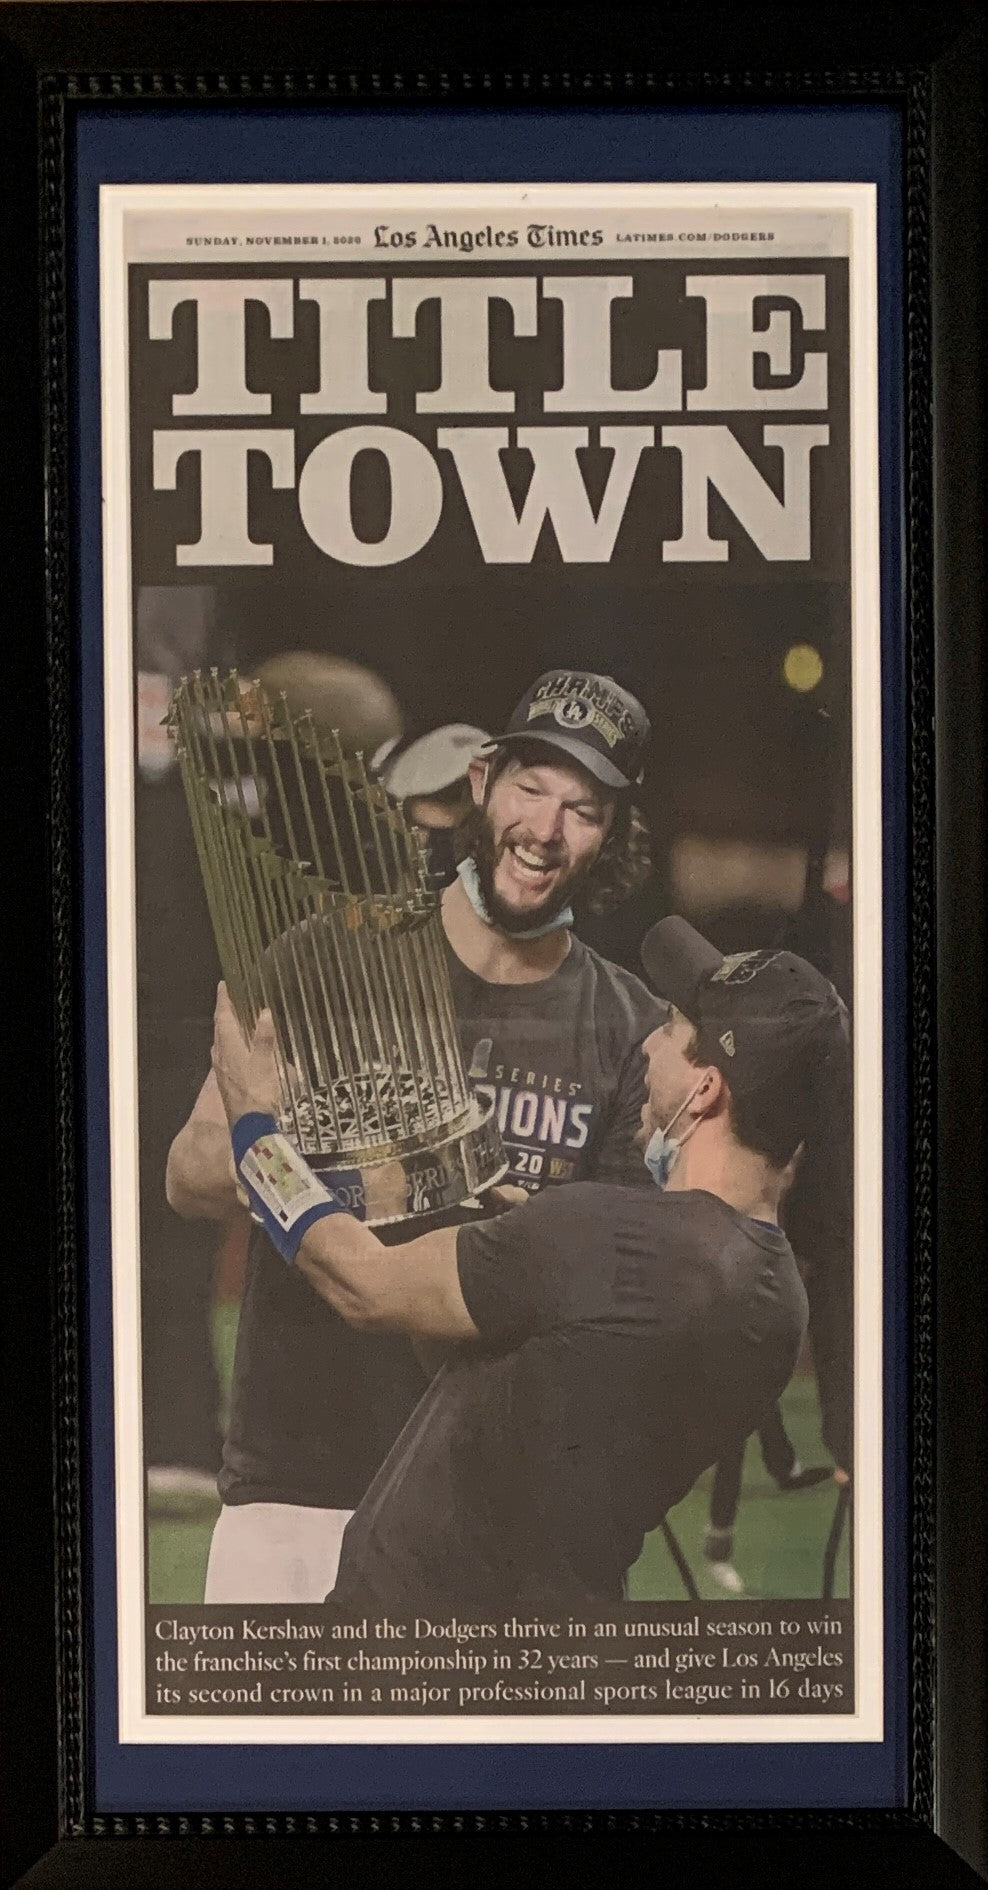 Los Angeles Dodgers 2020 World Series Champions TITLE TOWN Times Framed Original Baseball Newspaper 11/1/20-Powers Sports Memorabilia